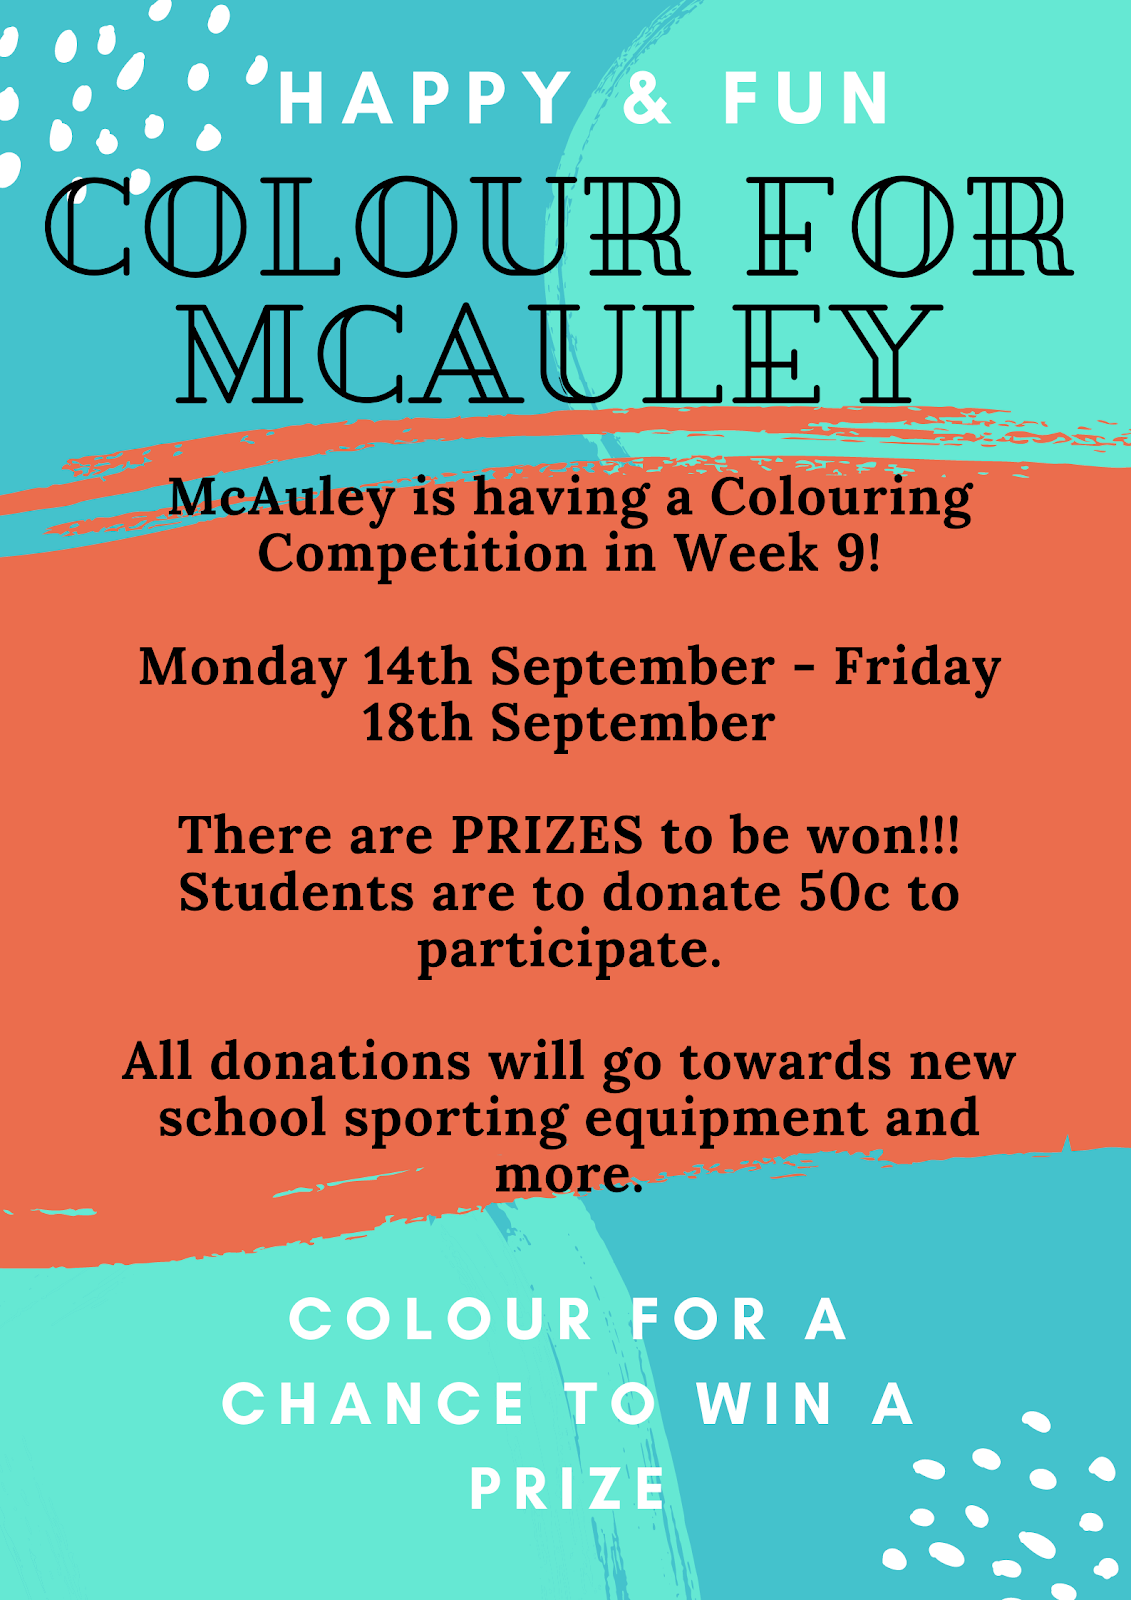 Colour for Mcauley Poster Primary